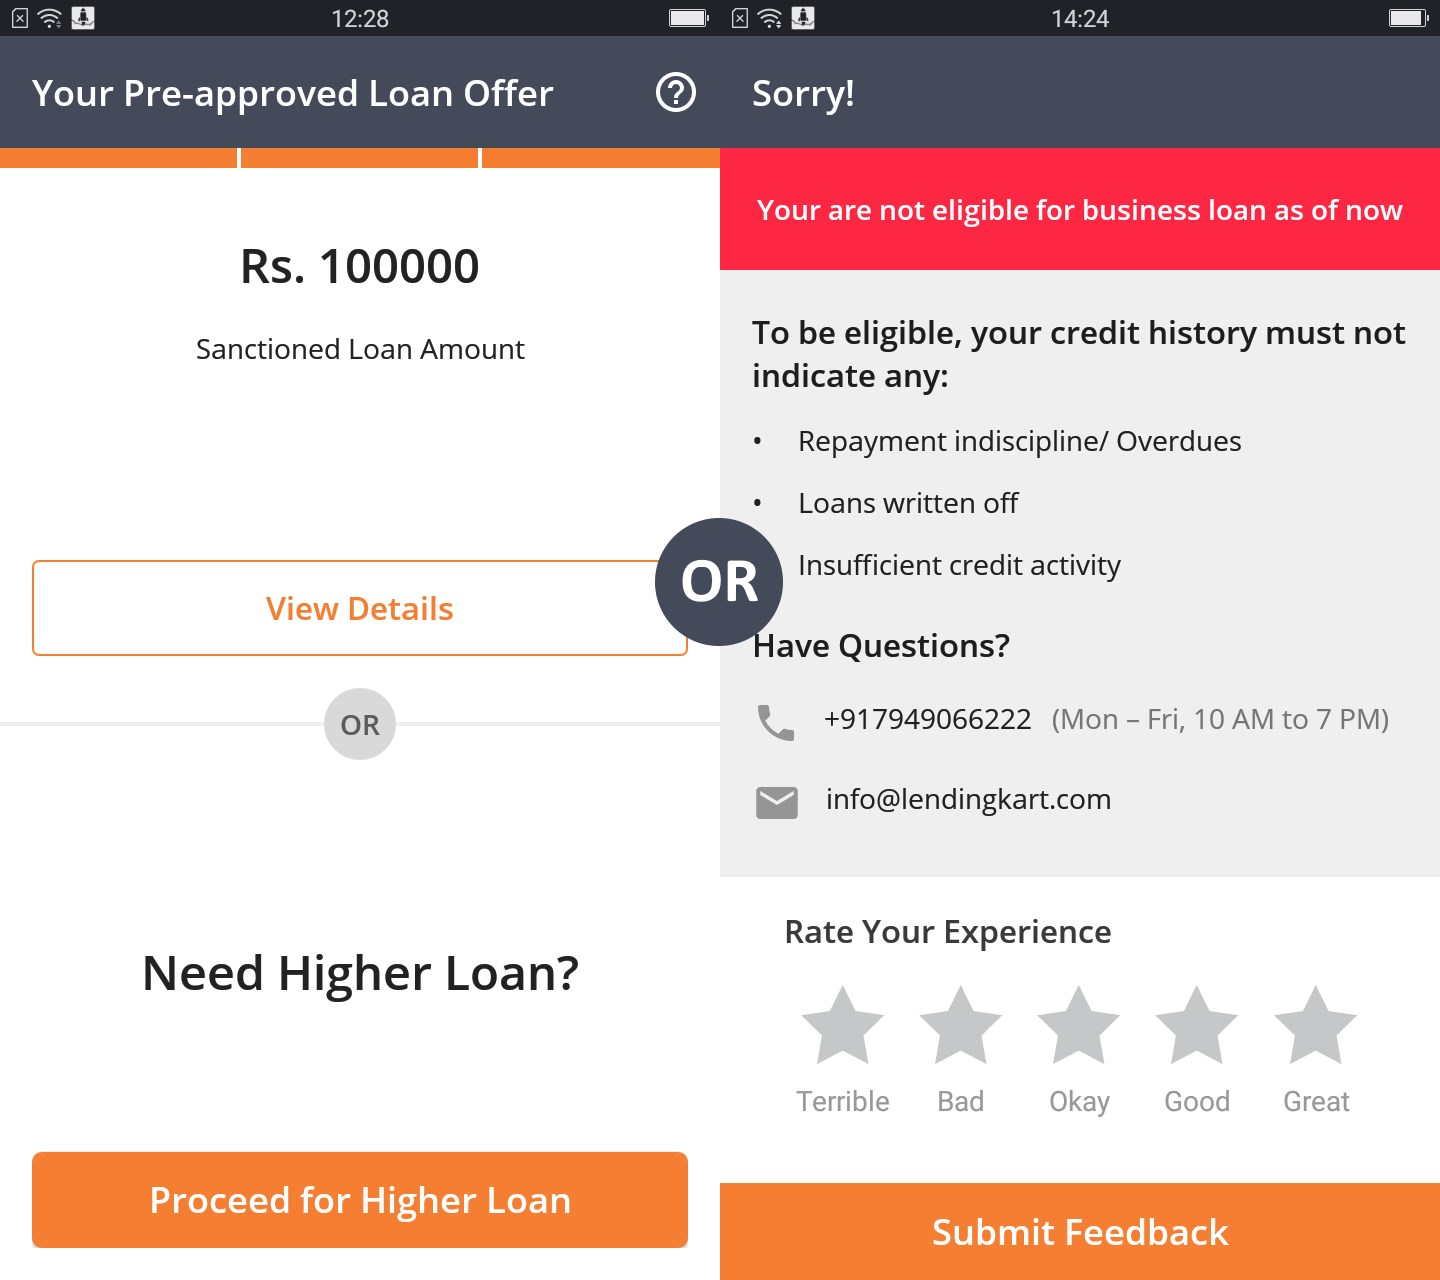 Lendingkart Instant Business Loans - Post PAN Verification